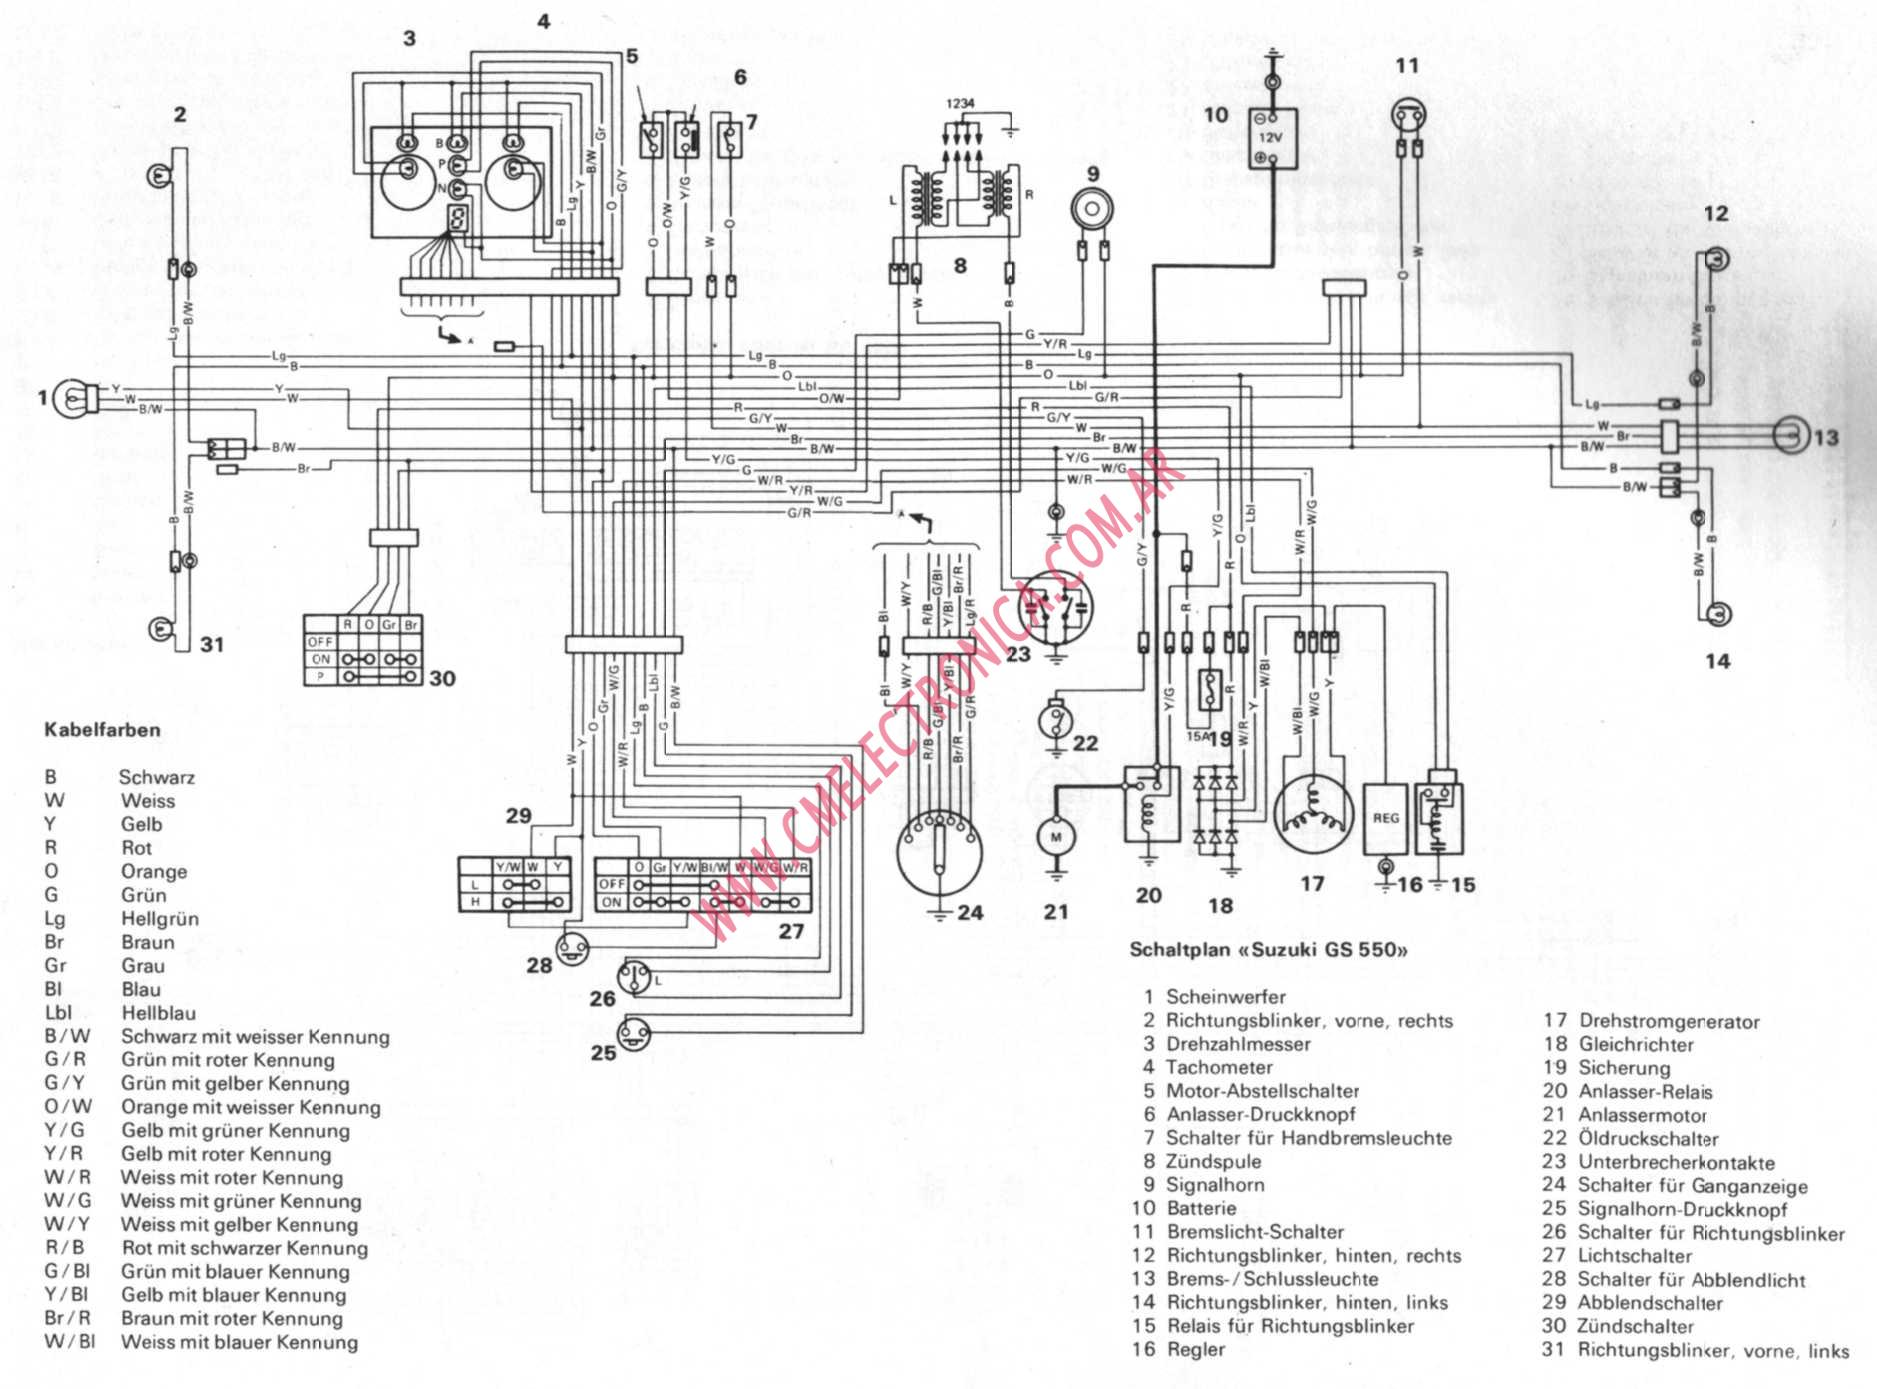 suzuki gs550 suzuki gs550 wiring diagram suzuki gsxr 750 wiring diagram 1980 GS Wiring-Diagram at couponss.co